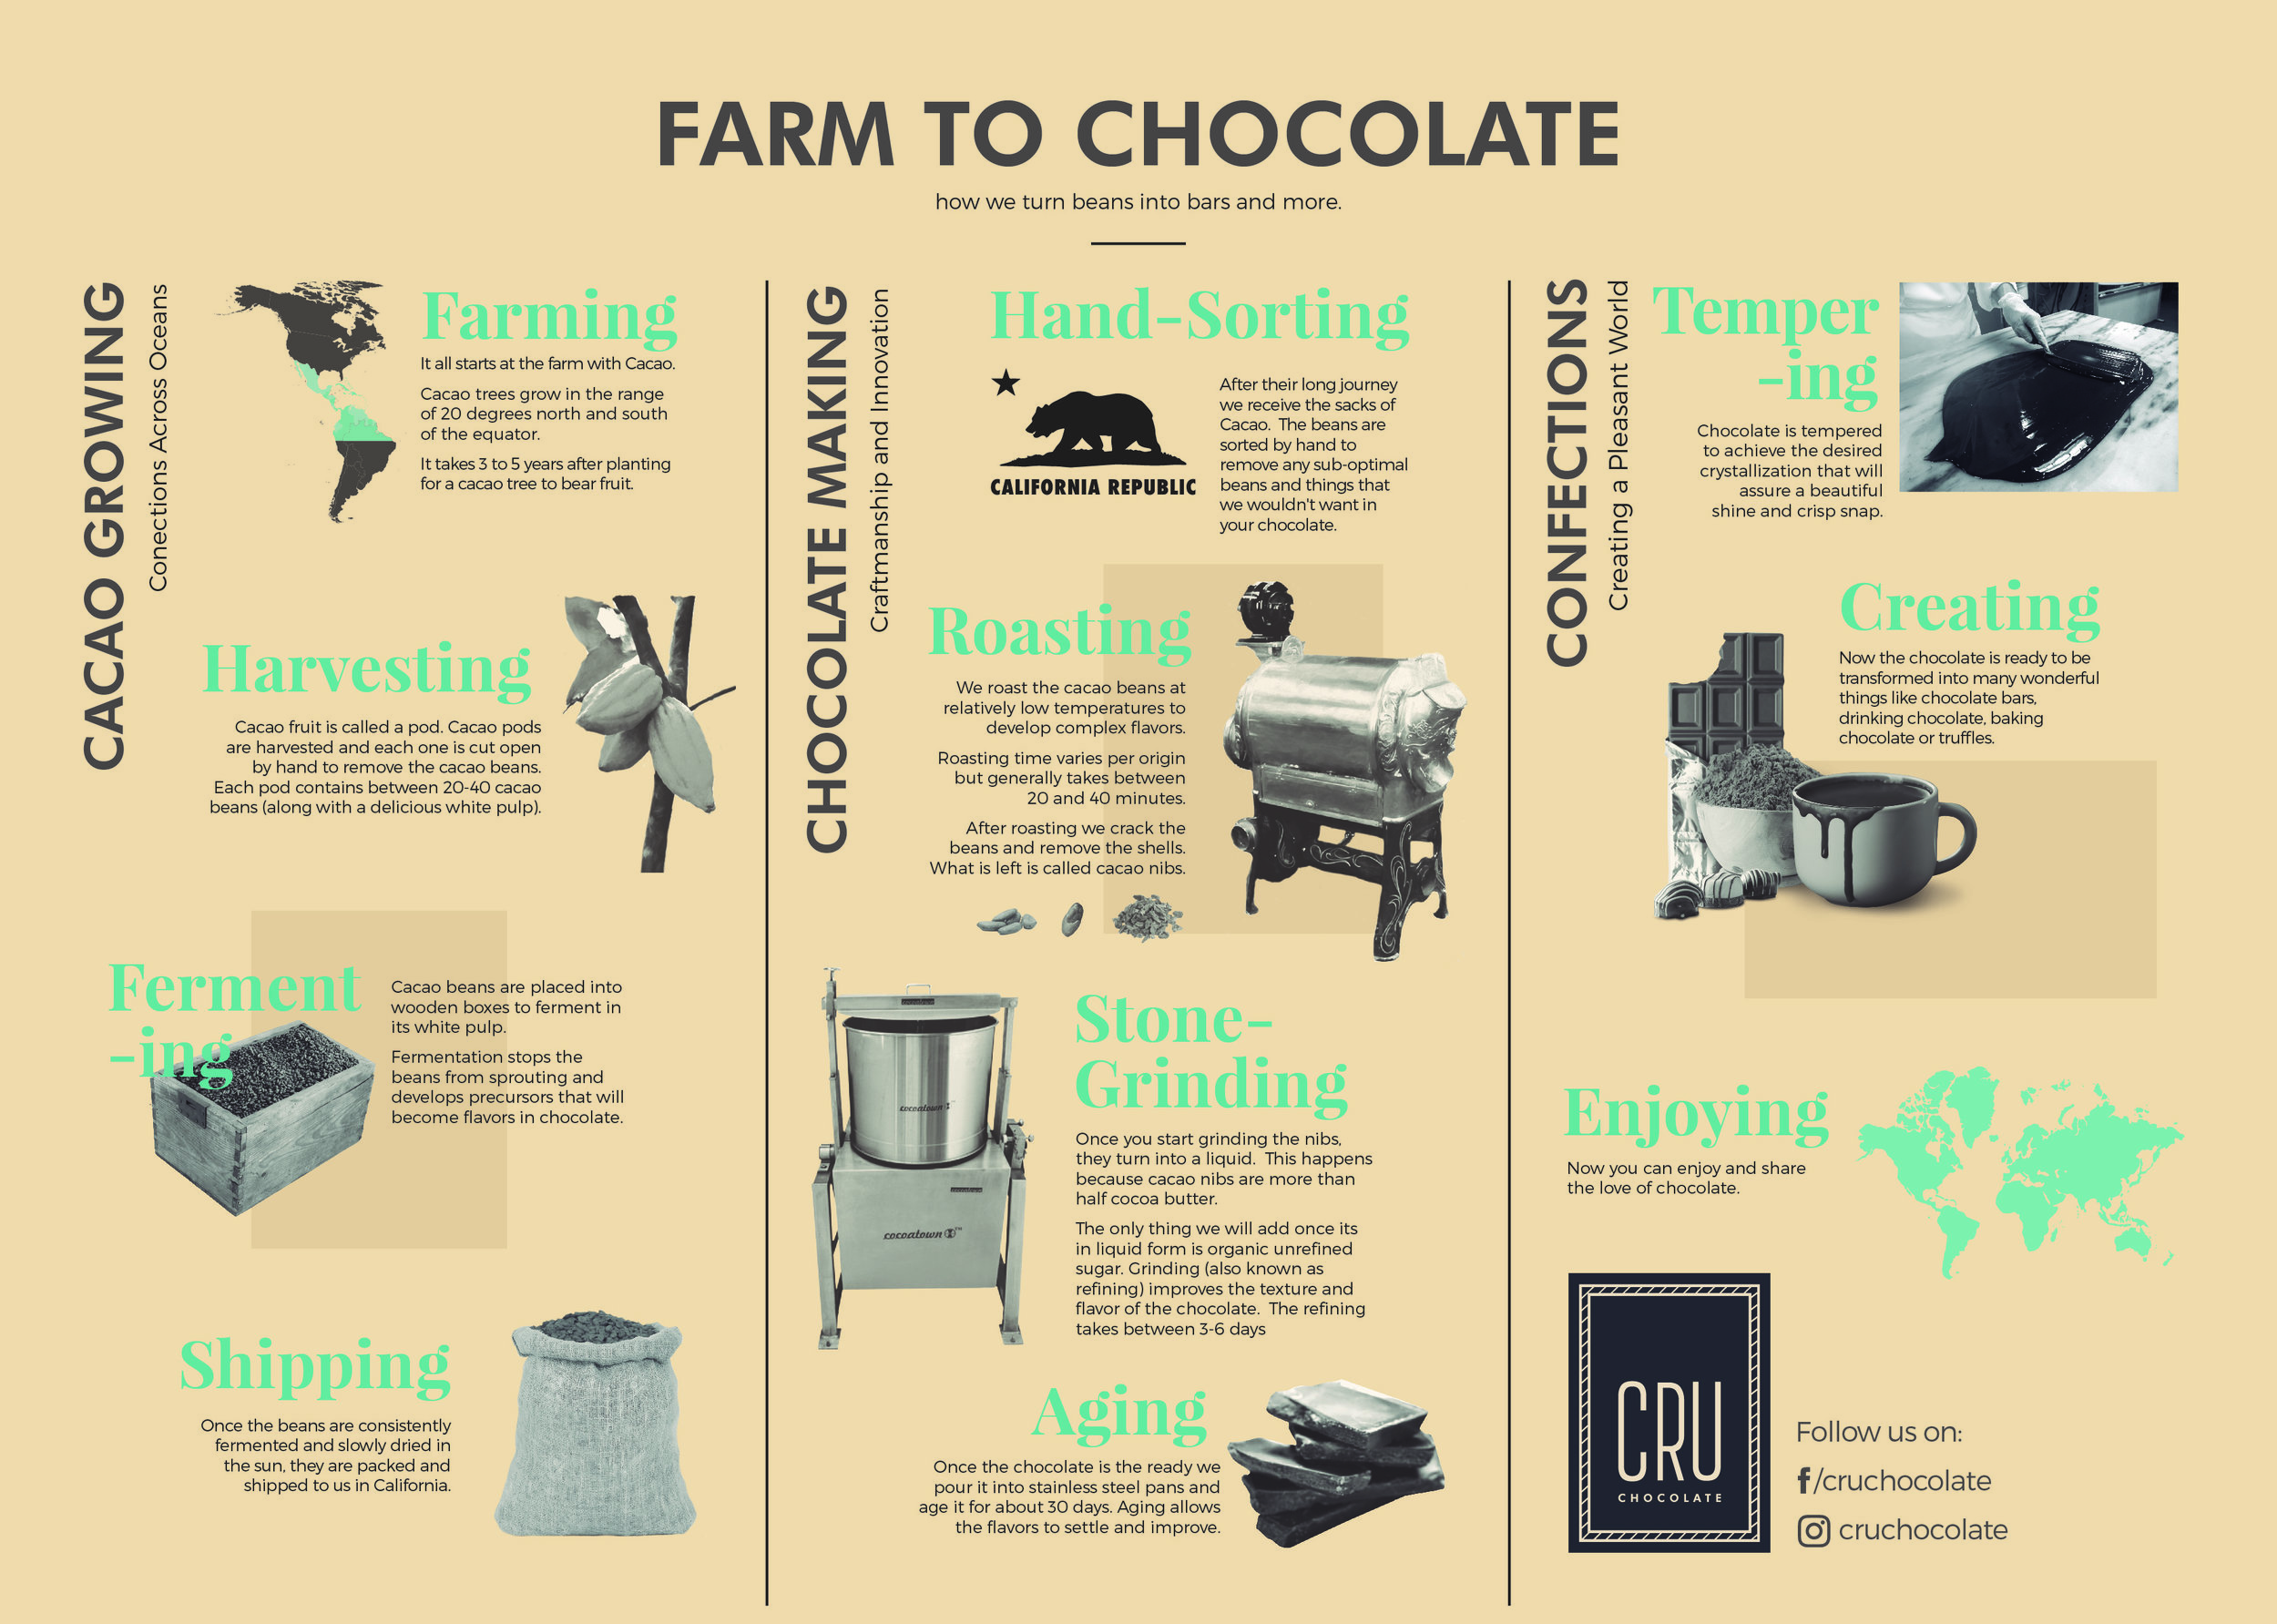 Chocolate made from scratch using Specialty Cacao - It's a long journey from the Cacao tree growing on farms in filtered sunlight to the Chocolate made just for you.